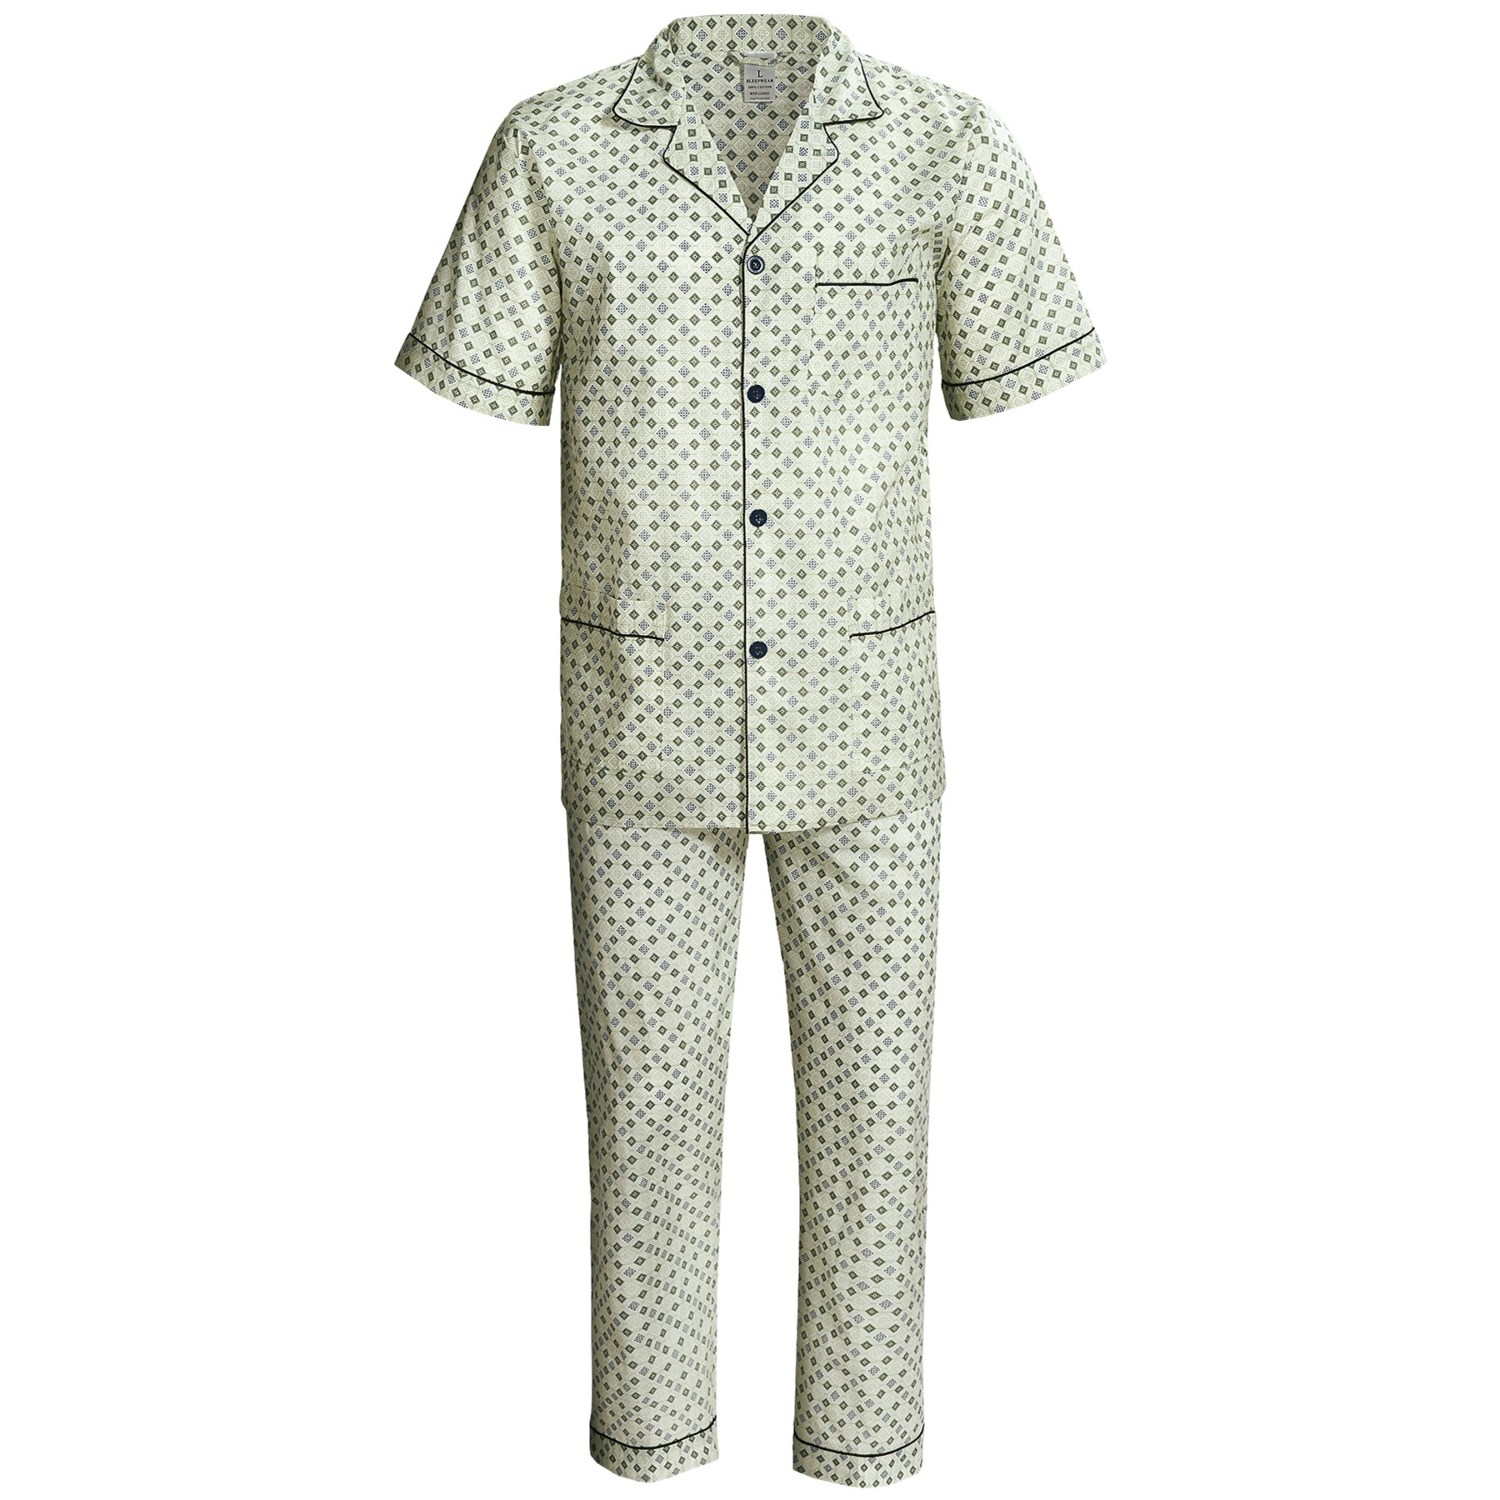 Online shopping for popular & hot Pajamas for Short Men from Women's Clothing & Accessories, Pajama Sets, Sleep Bottoms, Sleep Tops and more related Pajamas for Short Men like short pajama for men, pajama for men short, long pajamas for men, long pyjama for men. Discover over of the best Selection Pajamas for Short Men on hamlergoodchain.ga